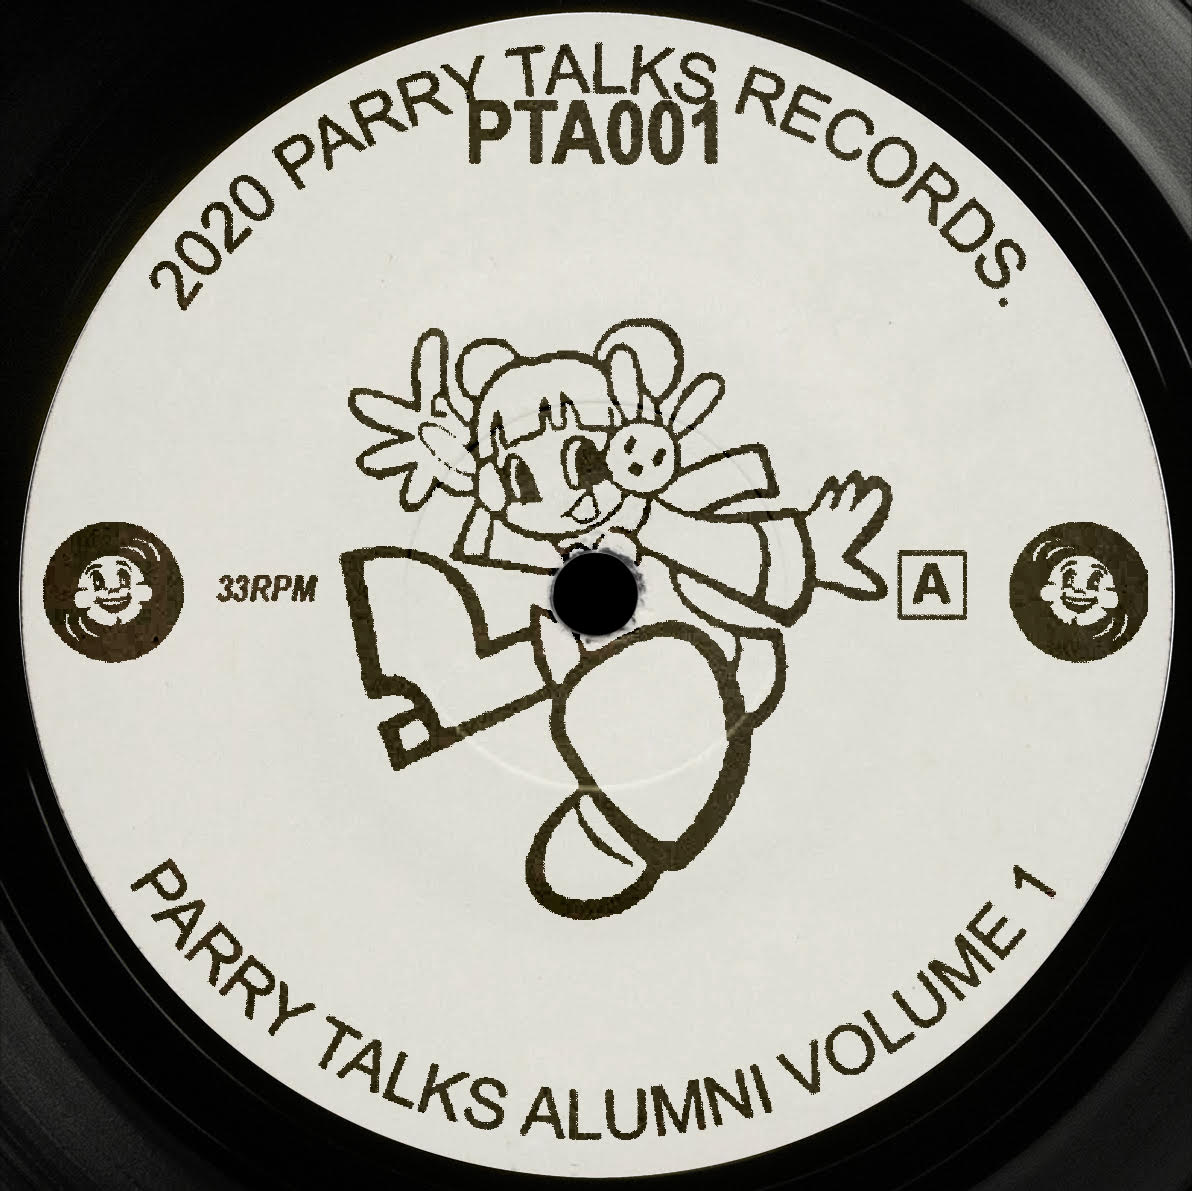 parry talks records - body corp